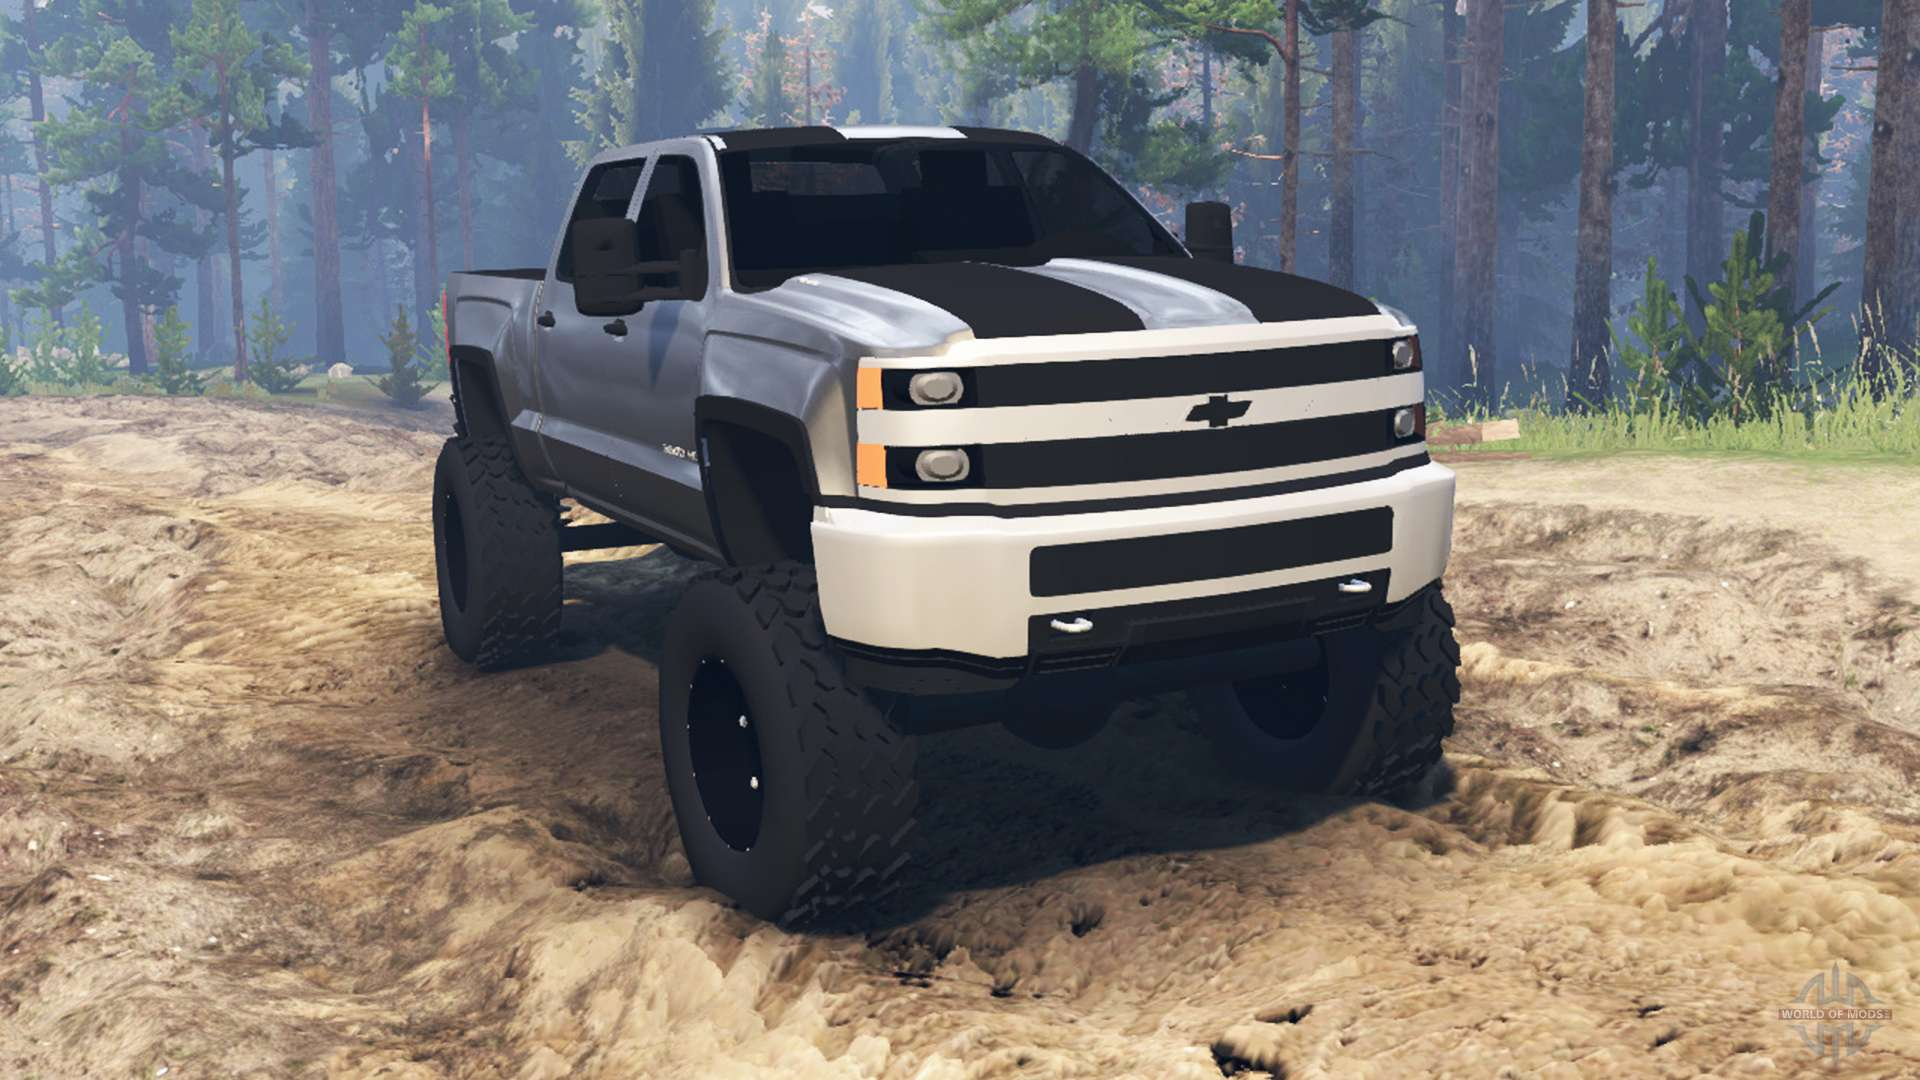 Police Car Lights Wallpaper Chevrolet Silverado 3500 Hd For Spin Tires